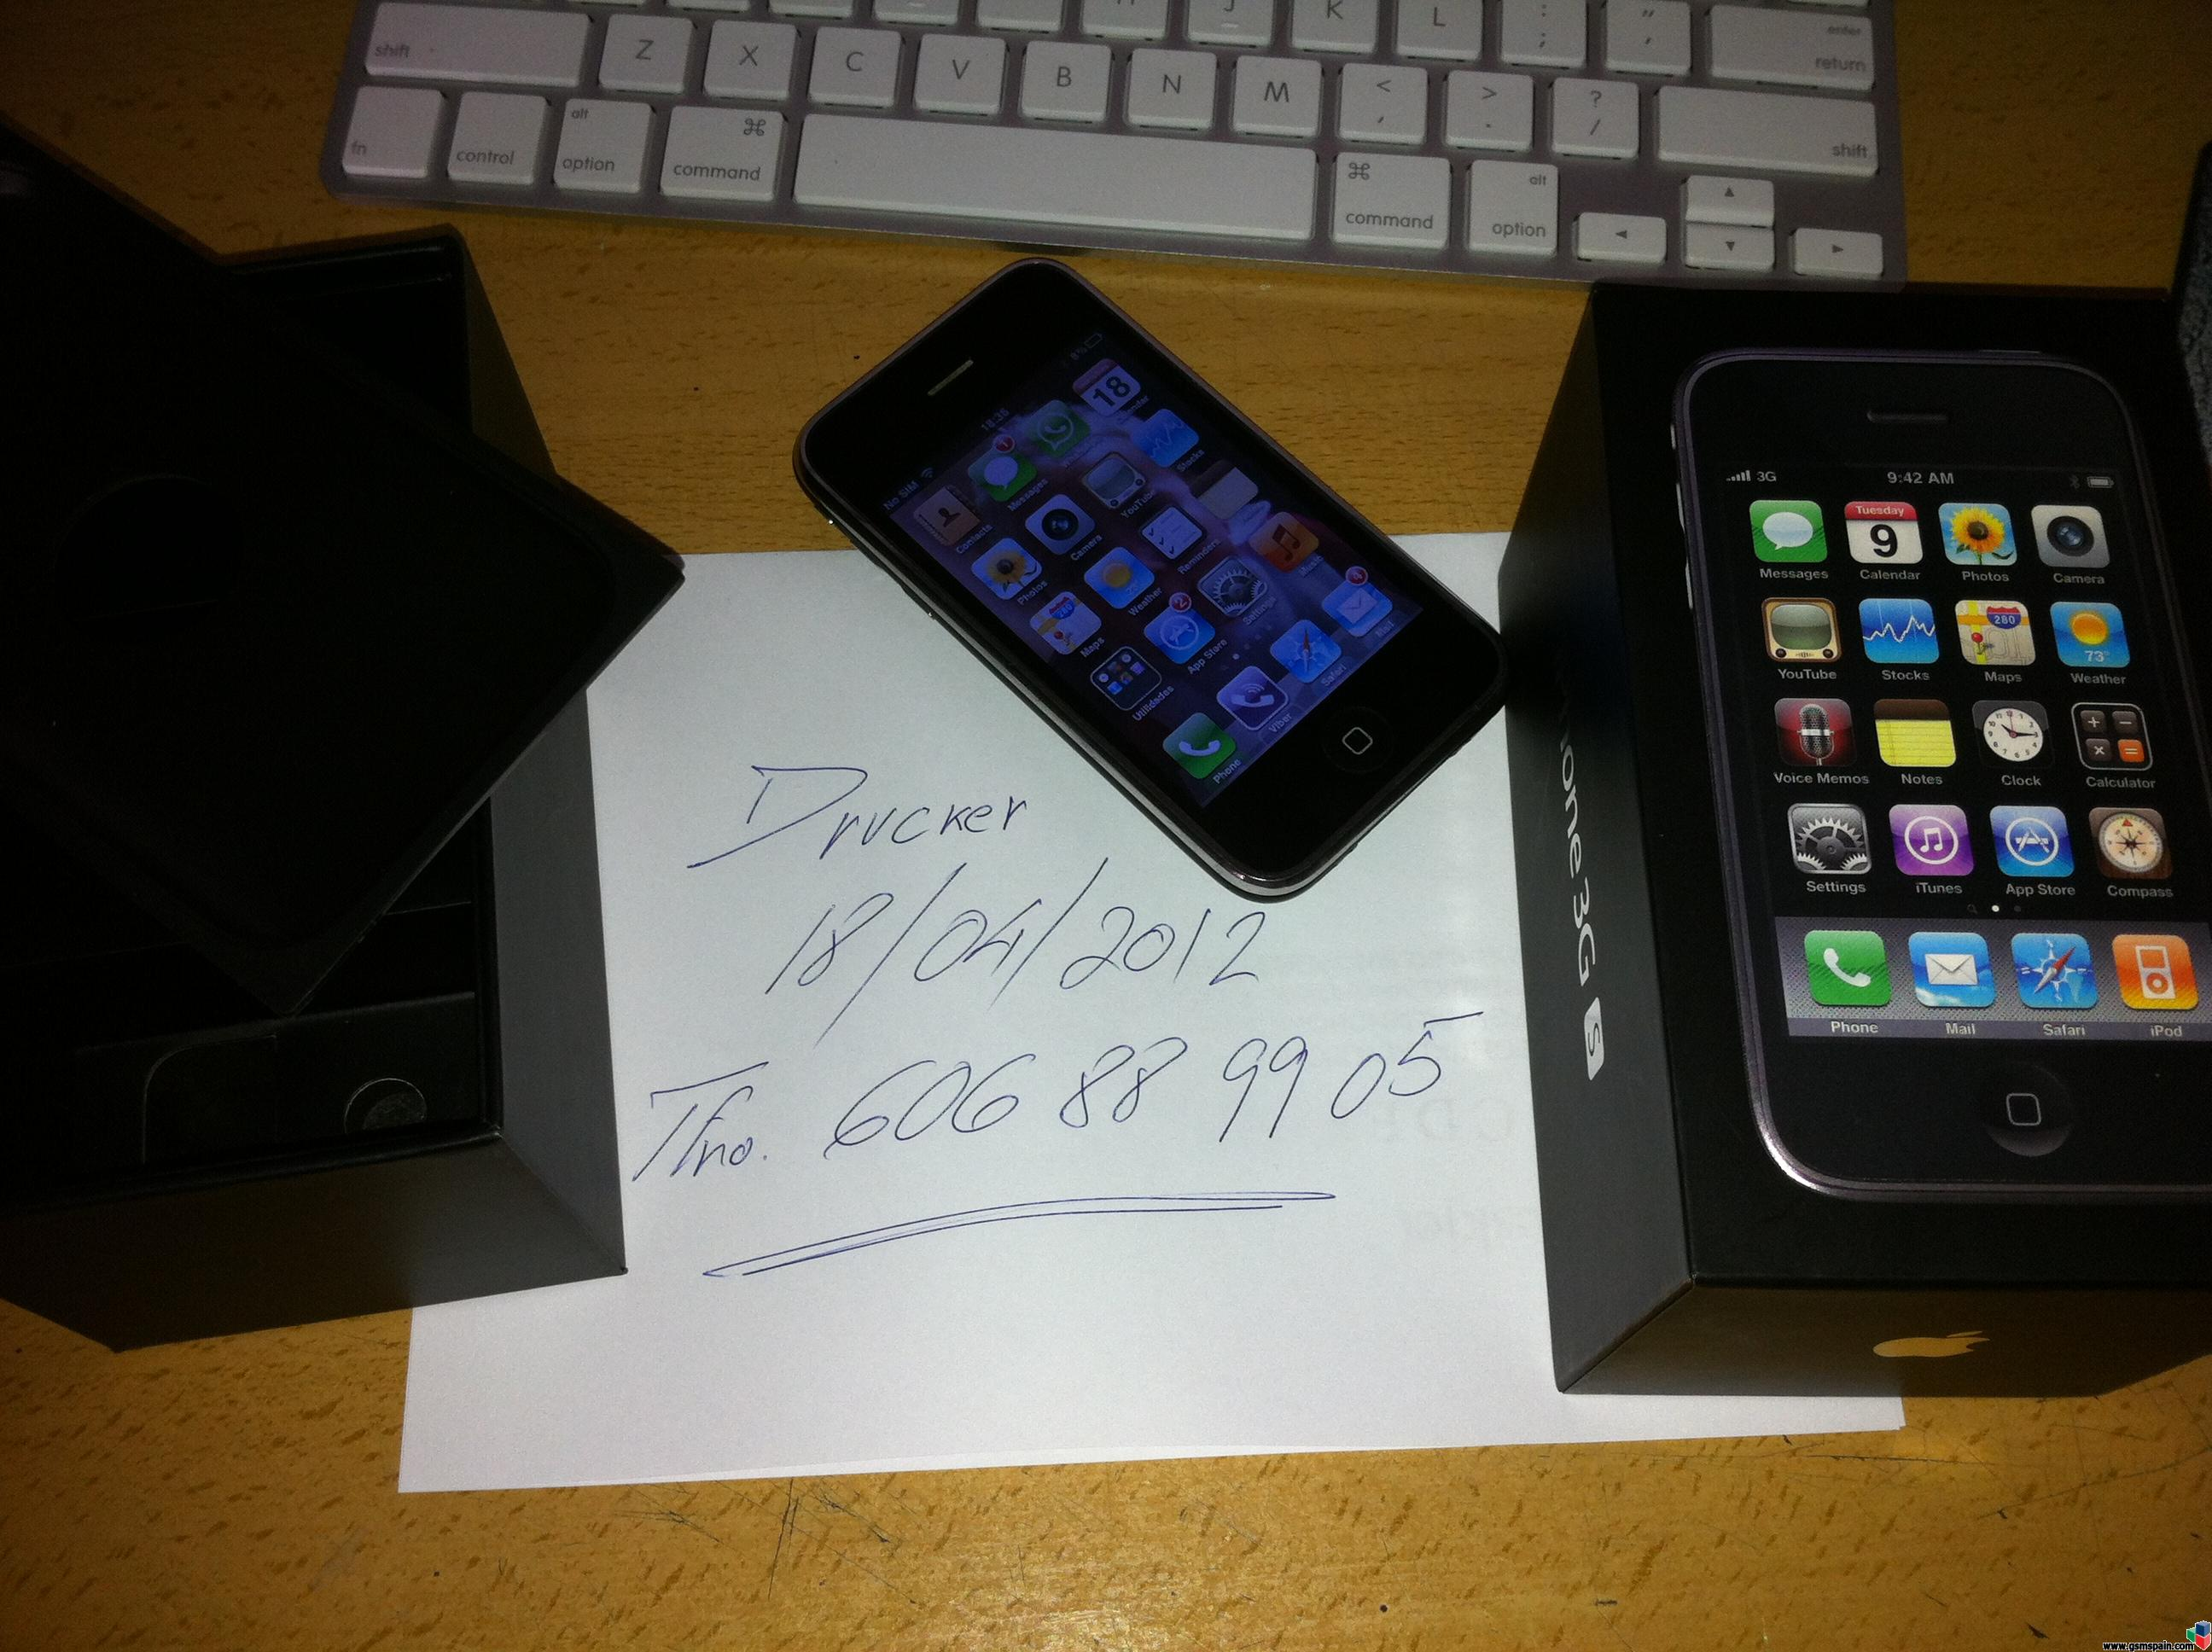 Iphone 3 Precio Libre Vendo Iphone 3gs 16 Gb Libre Negro